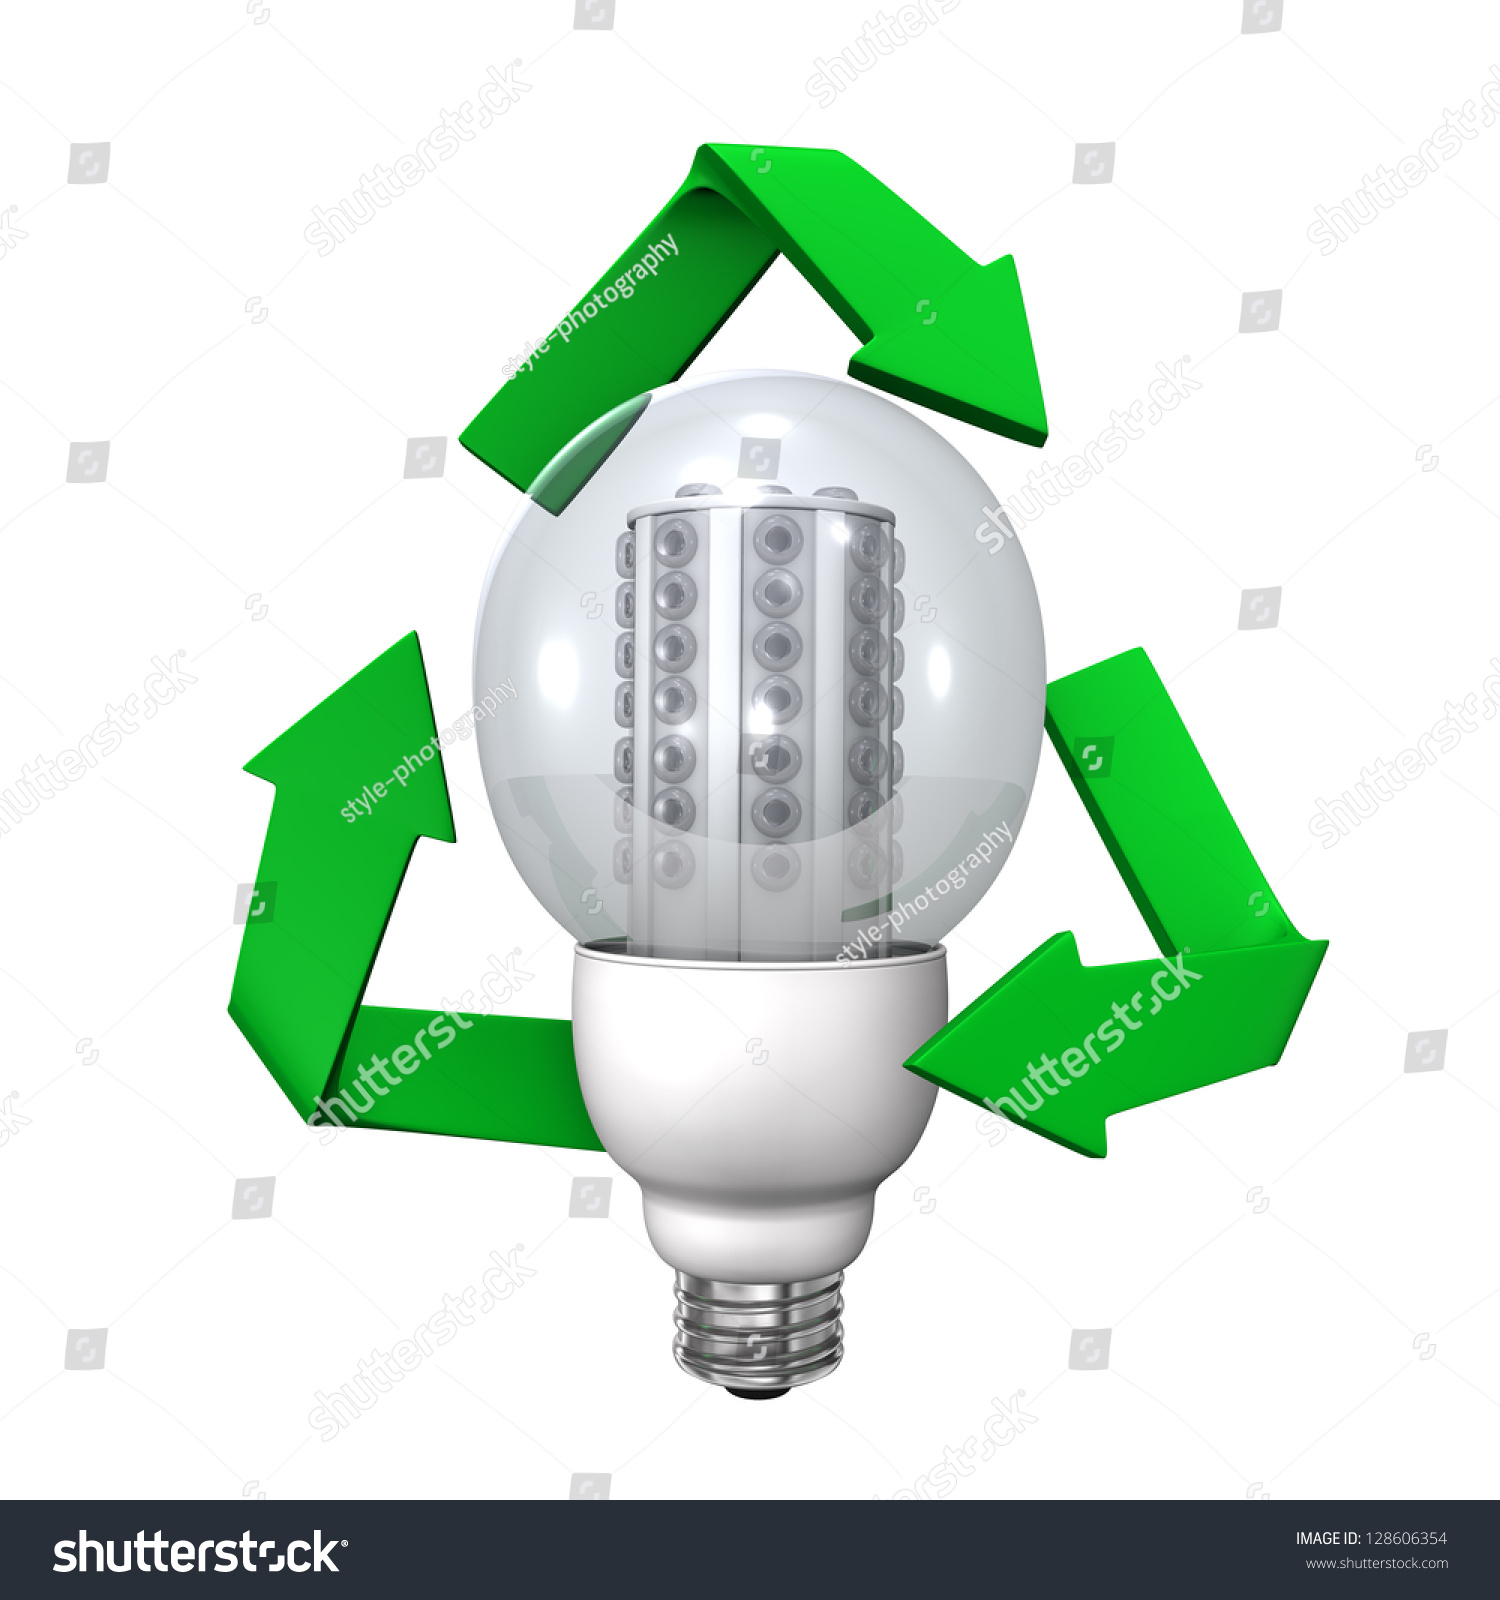 Recycling Light Bulbs Lowes